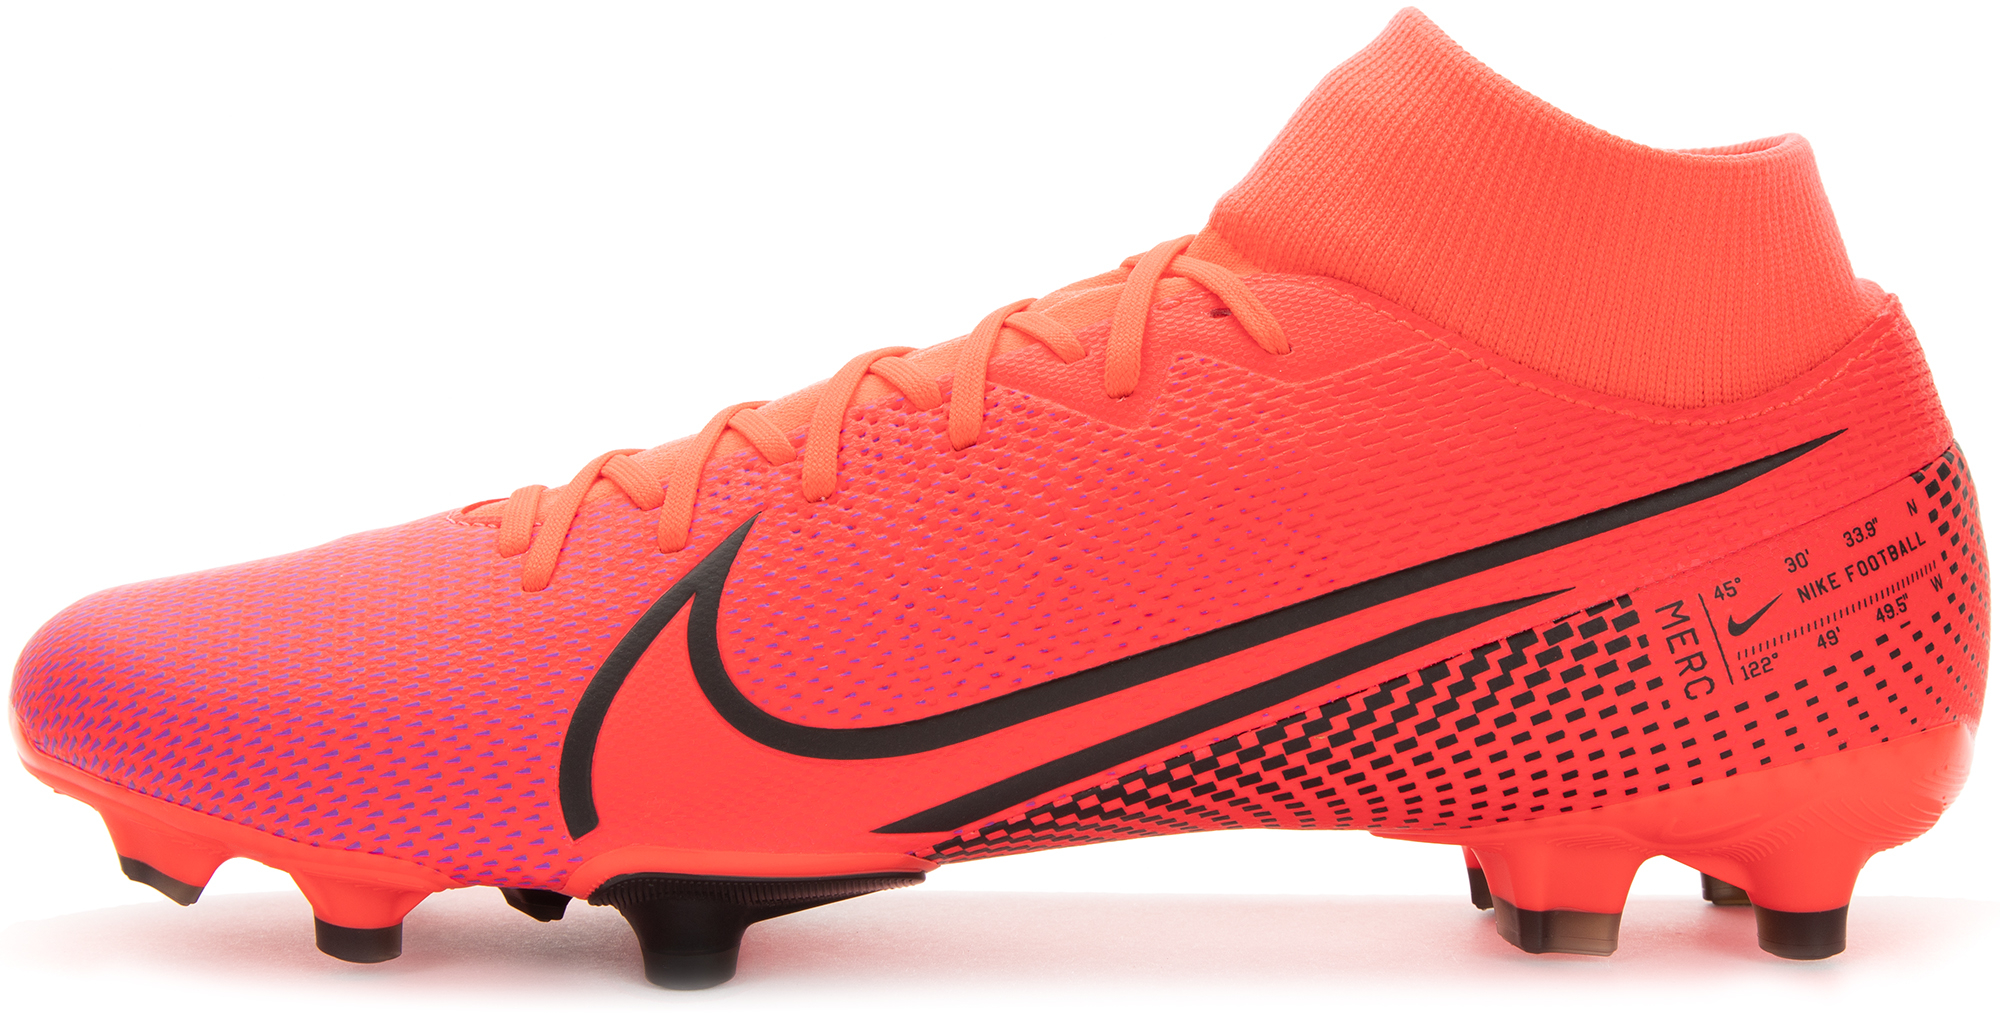 Nike Бутсы мужские Nike Superfly 7 Academy FG/MG, размер 43 бутсы nike superfly 6 club fg mg ah7363 001